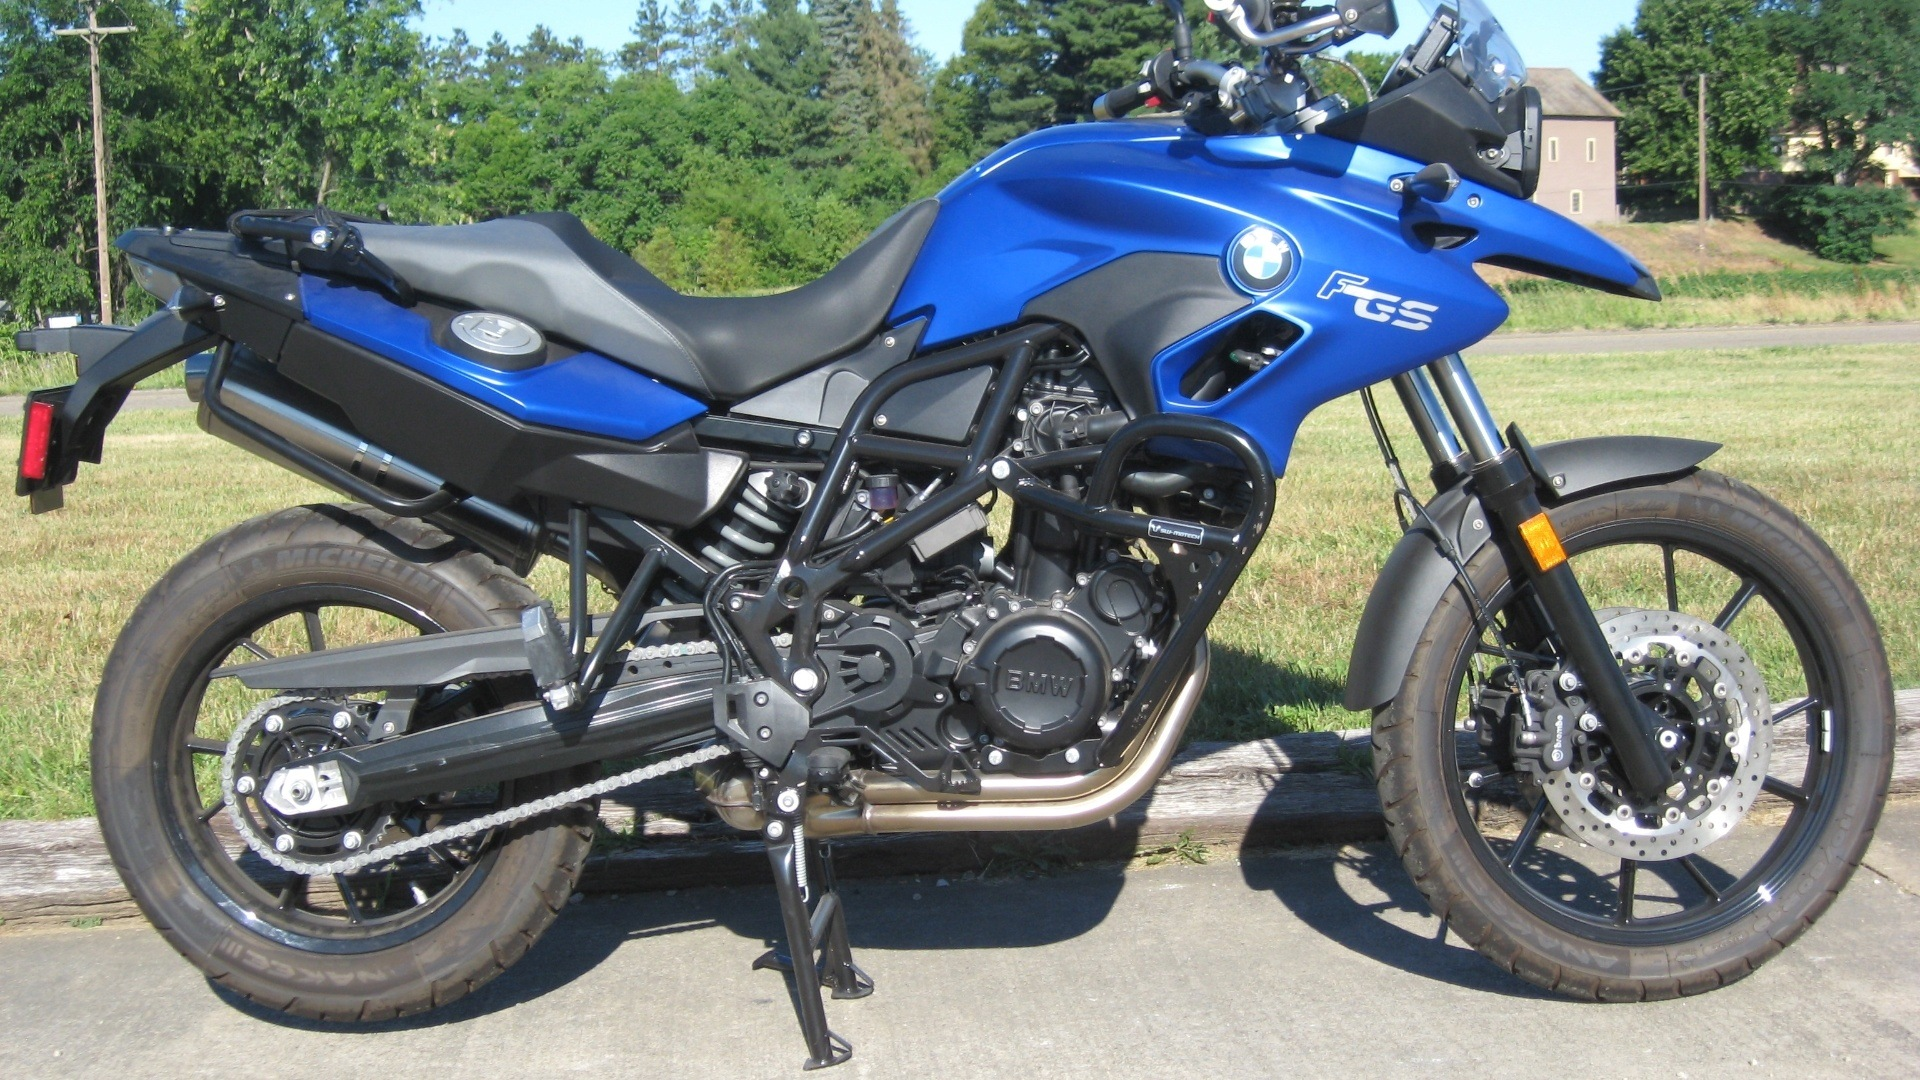 2013 bmw f700gs specs and review 2014 2015 new html. Black Bedroom Furniture Sets. Home Design Ideas